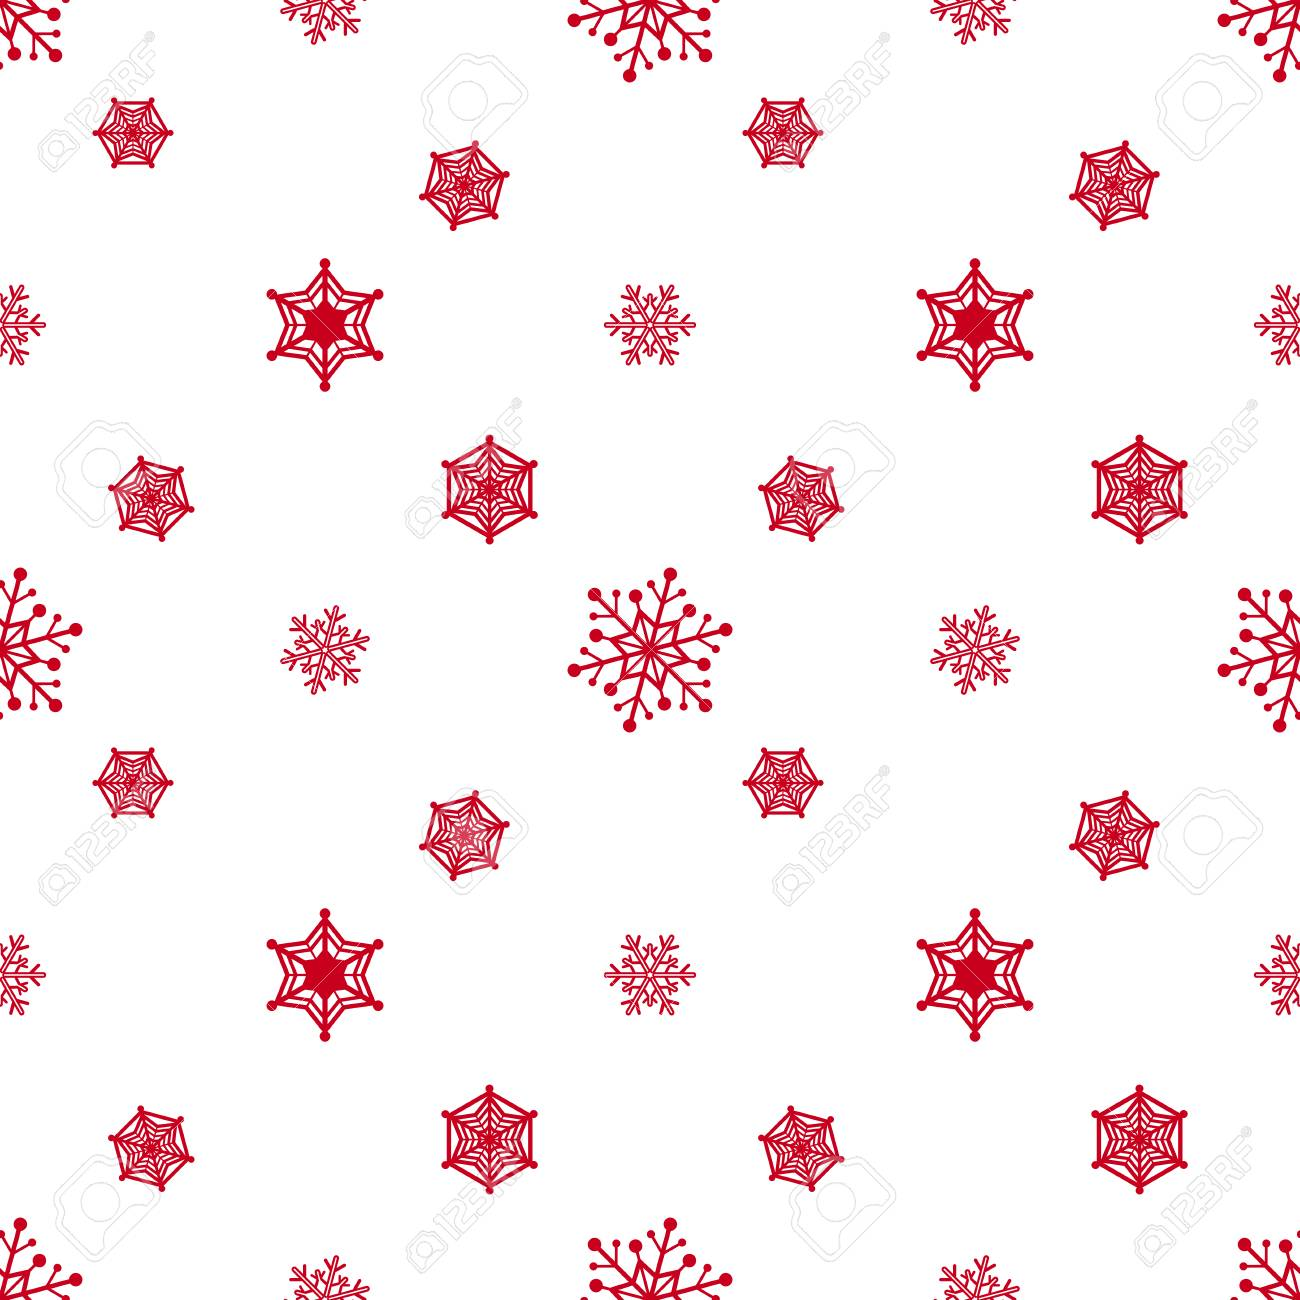 Snowflake Red Colour White Background Christmas Pattern Wallpaper